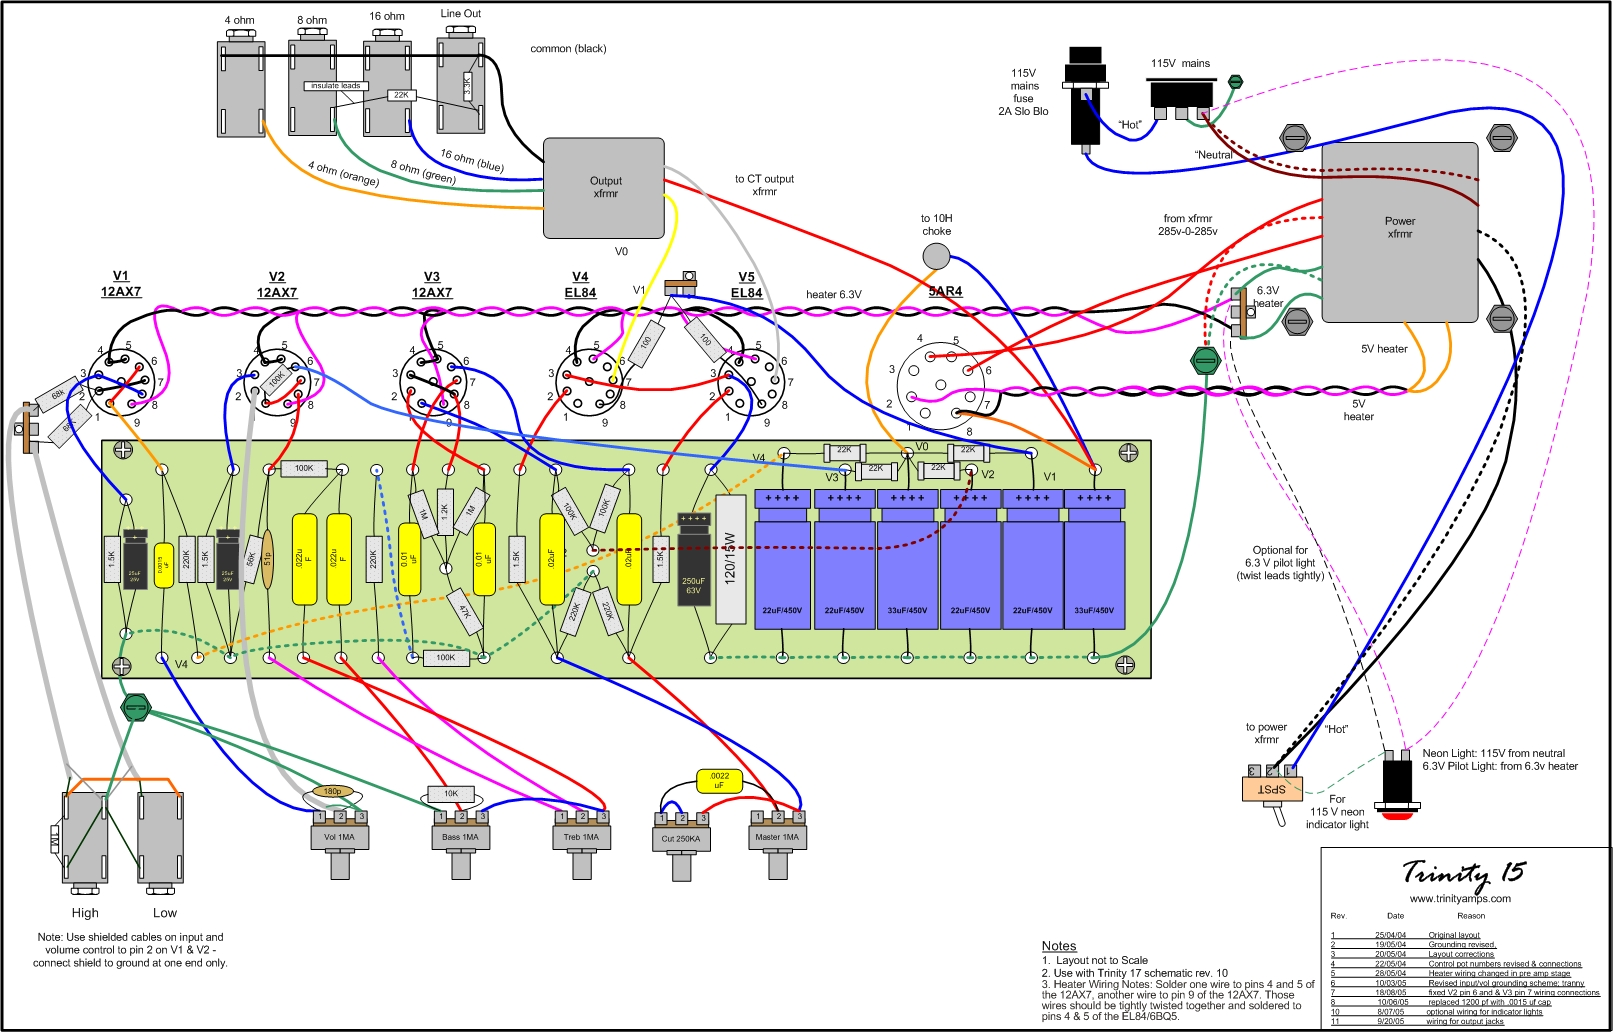 Index Of Forumgallery Trinity 5wtubeamplifiercircuitwithel84gif 18 Oct 2007